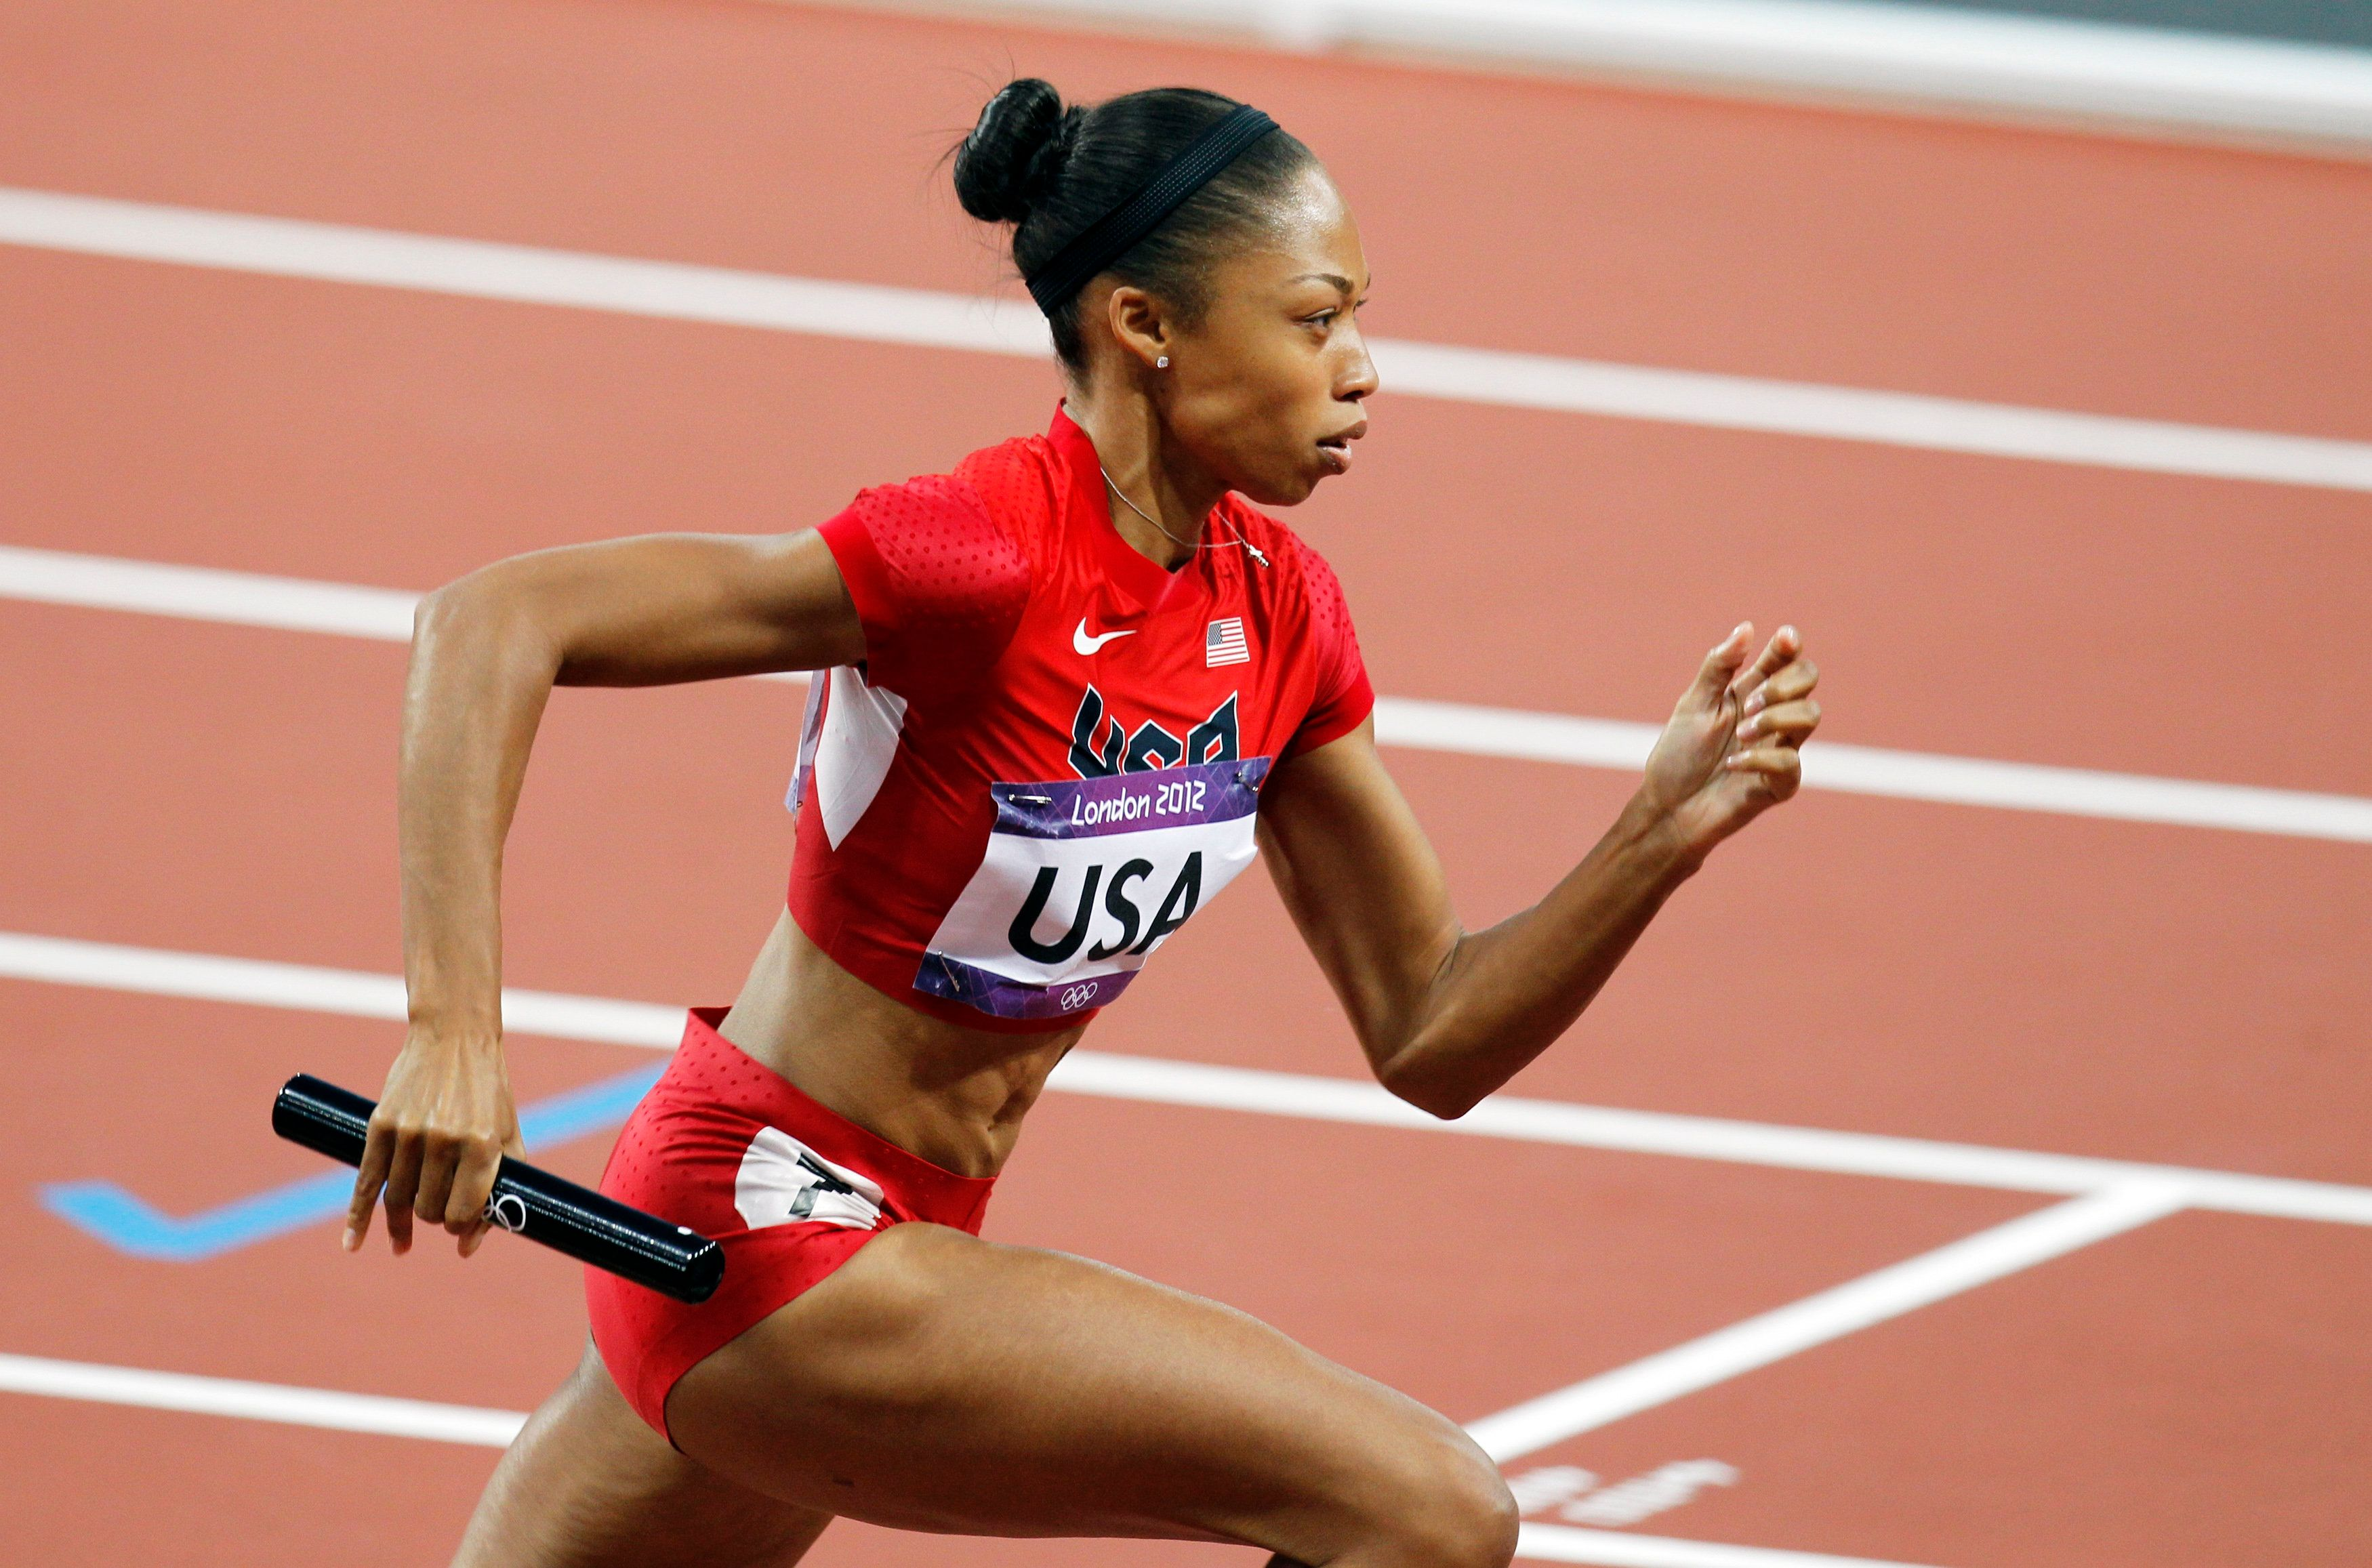 World class sprinter Allyson Felix has some tips for the weekend warrior.